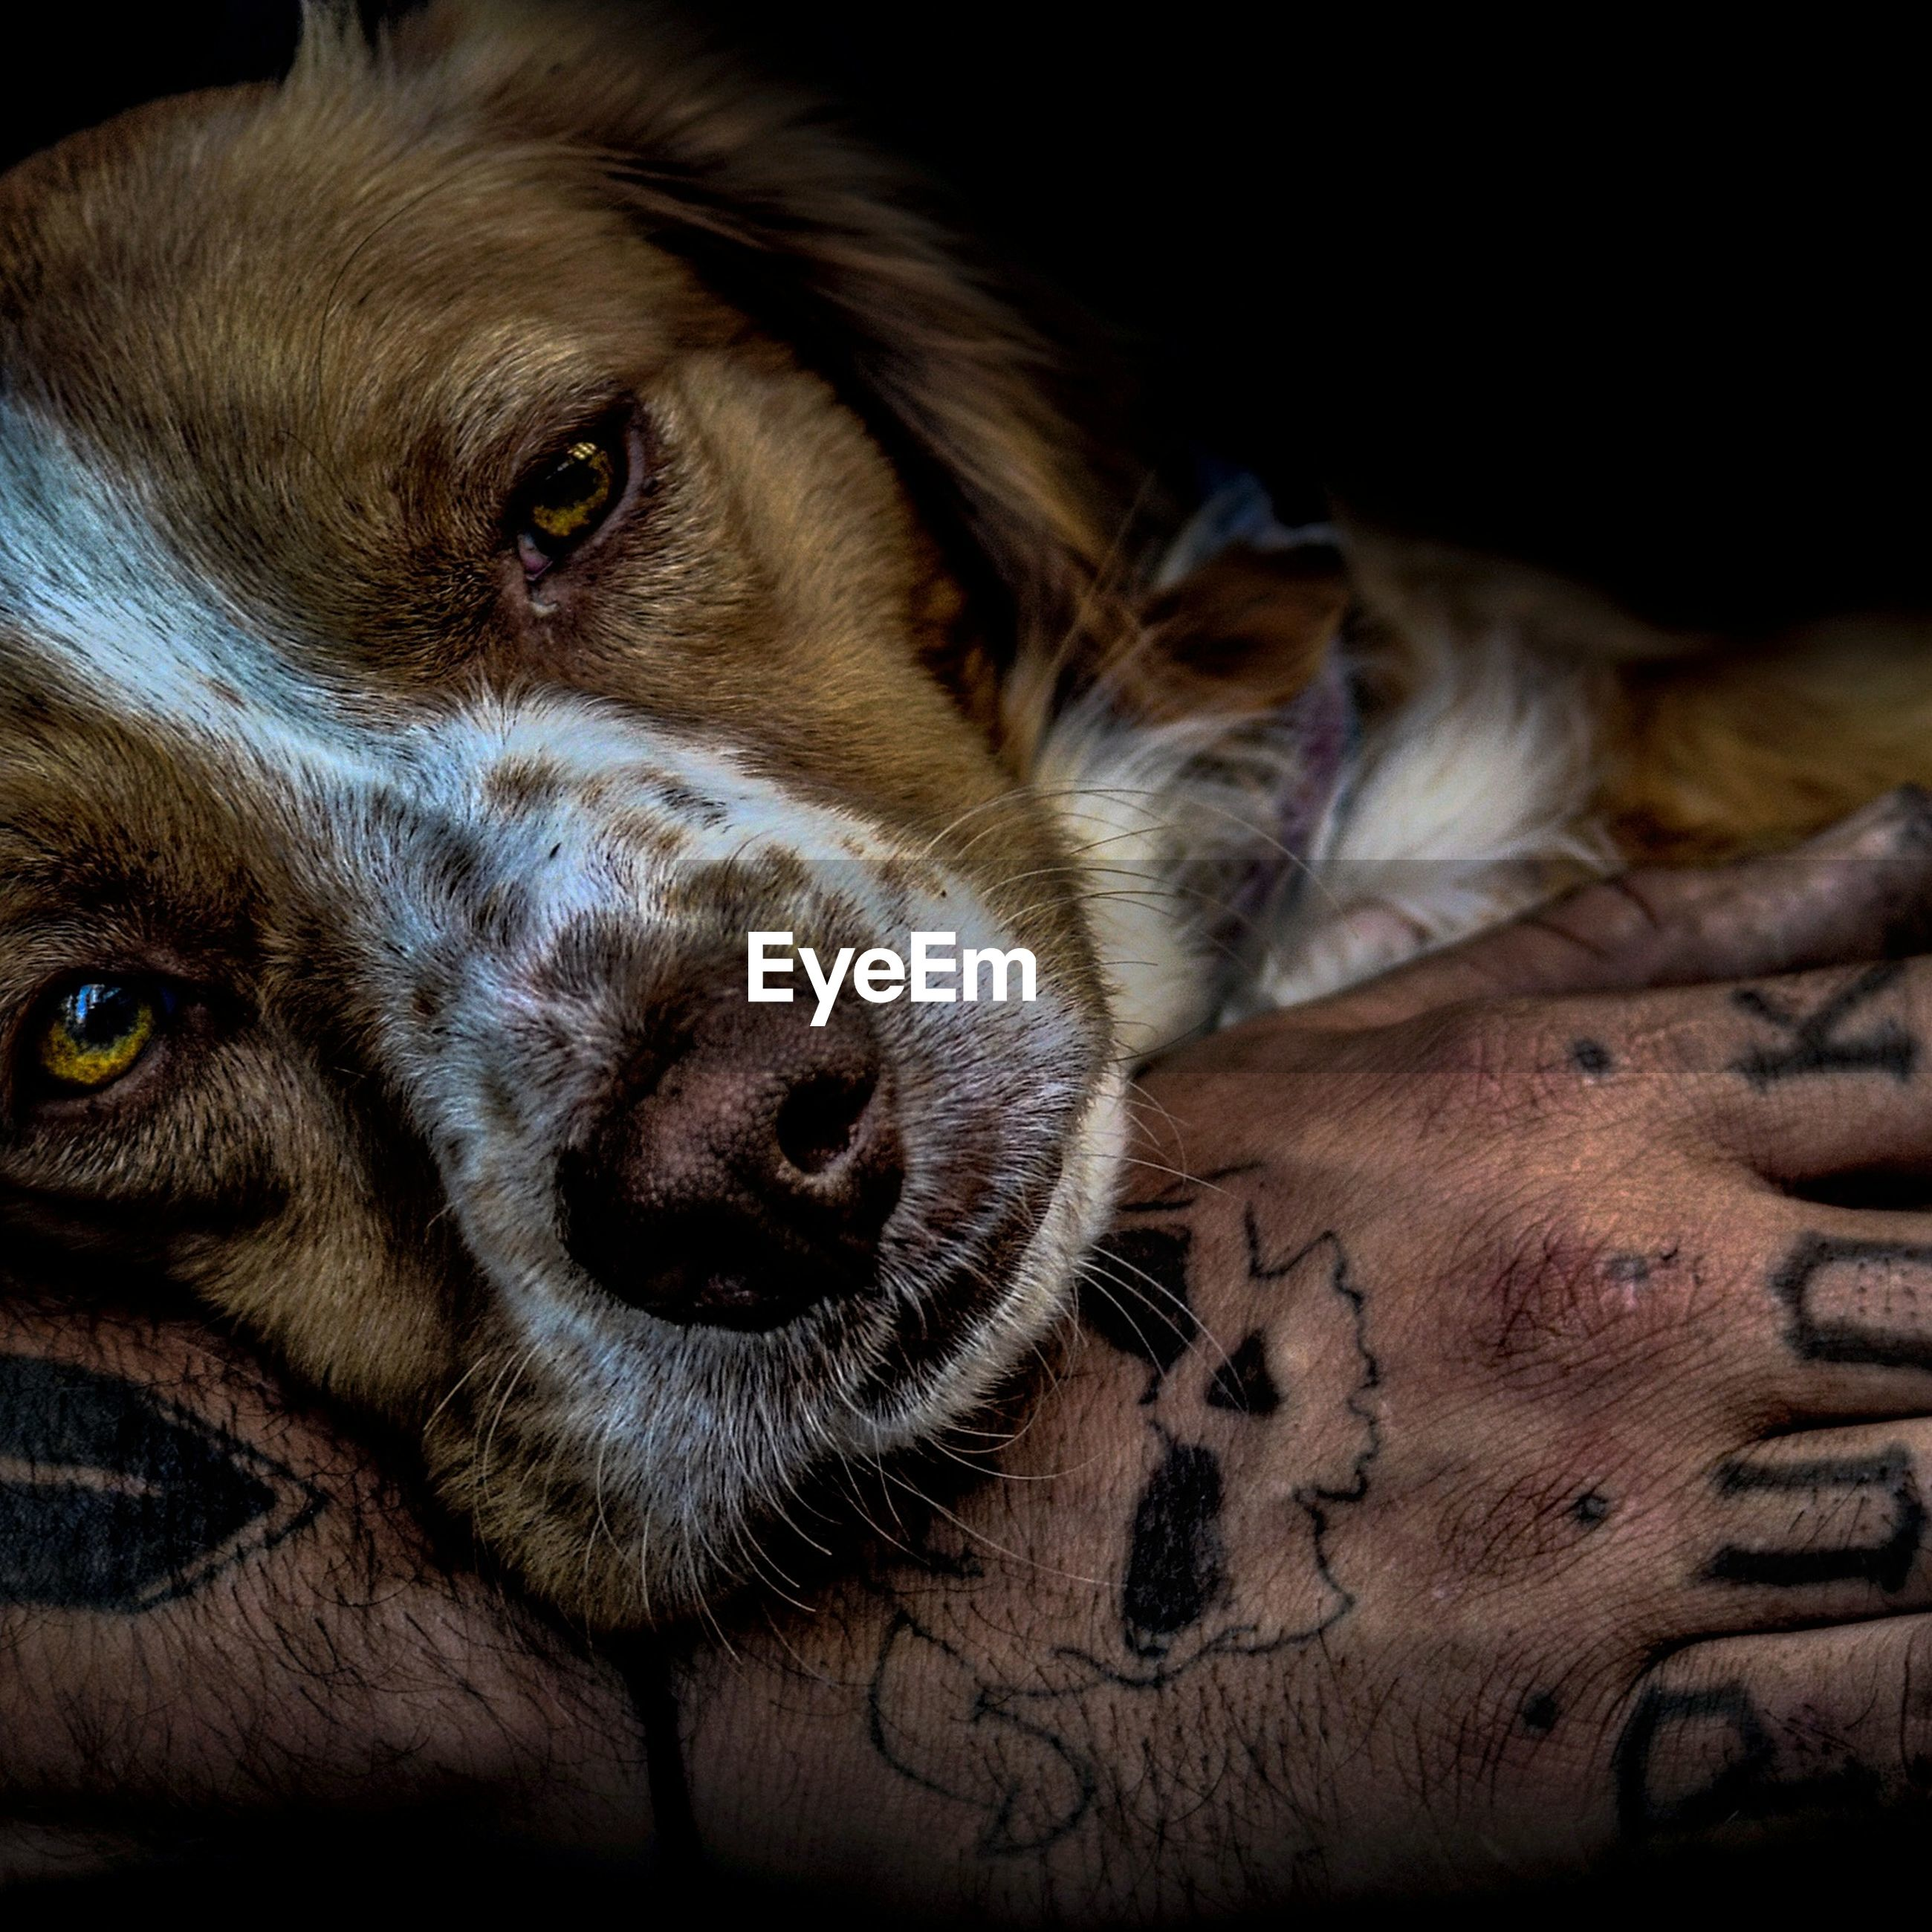 one animal, pets, animal themes, dog, animal head, animal body part, mammal, domestic animals, close-up, portrait, human body part, animal eye, indoors, one person, black background, people, day